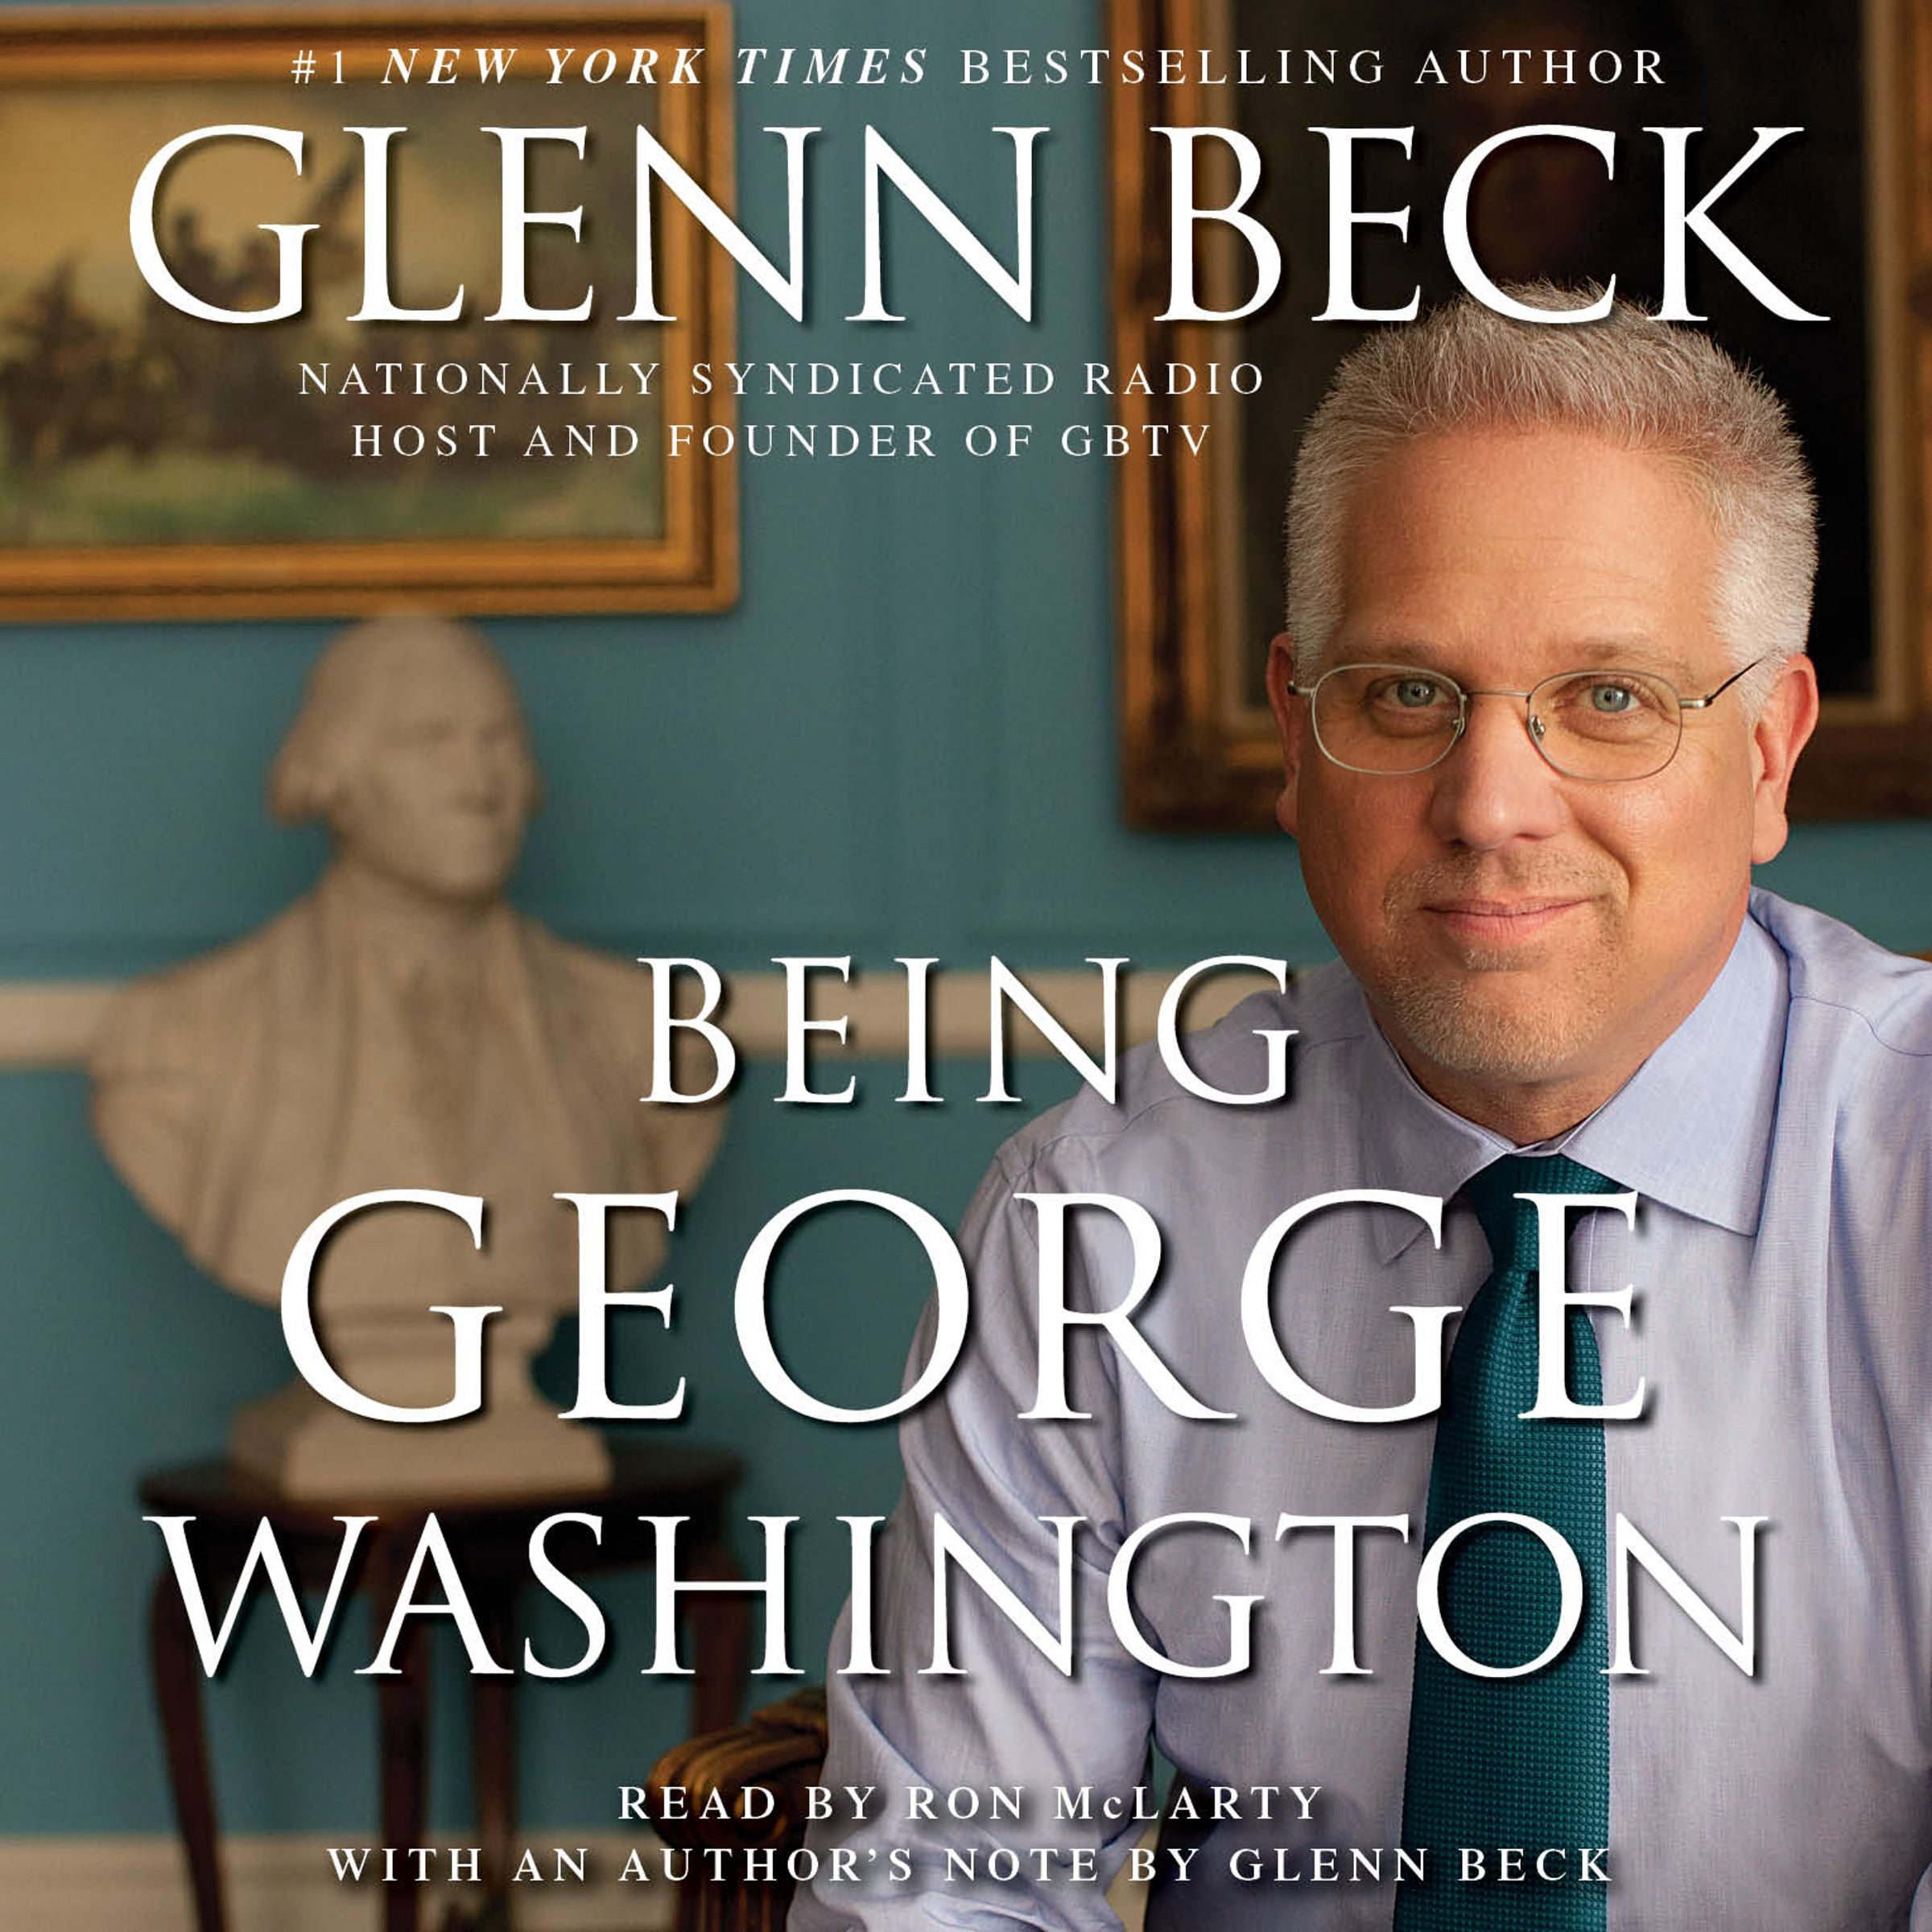 Being-george-washington-9781442347458_hr